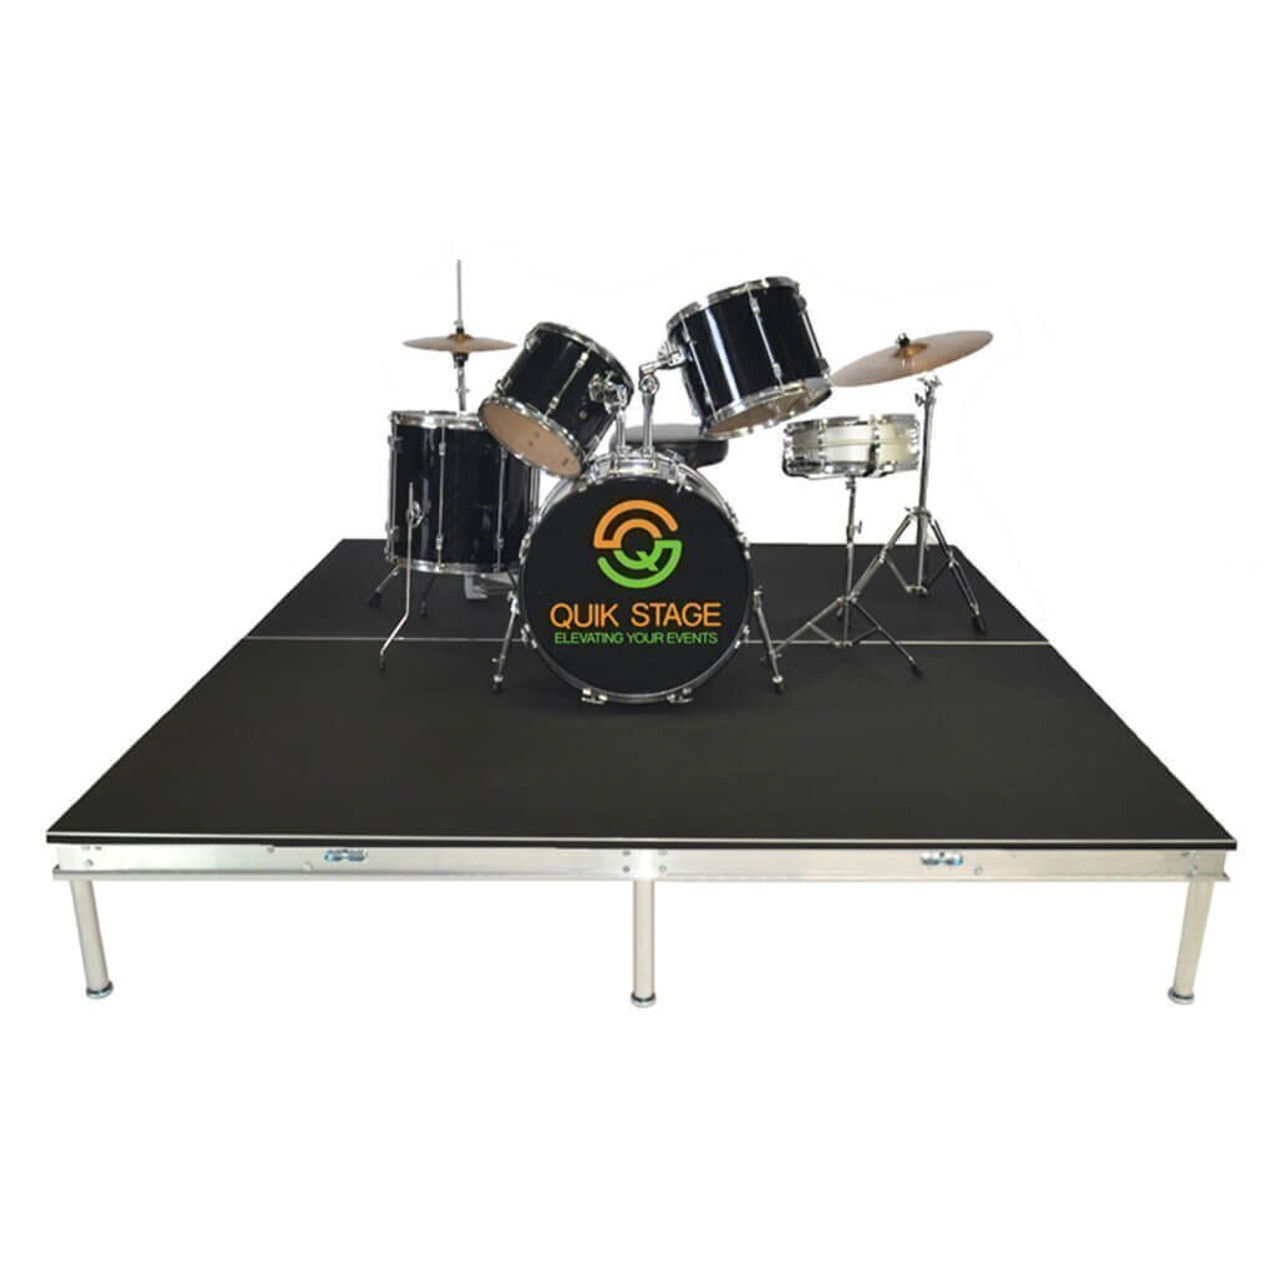 Quik Stage 4' x 32' High Portable Stage Package with Black Polyvinyl Non-Skid Surface. Additional Heights and Surfaces Available - Drum Riser without skirting